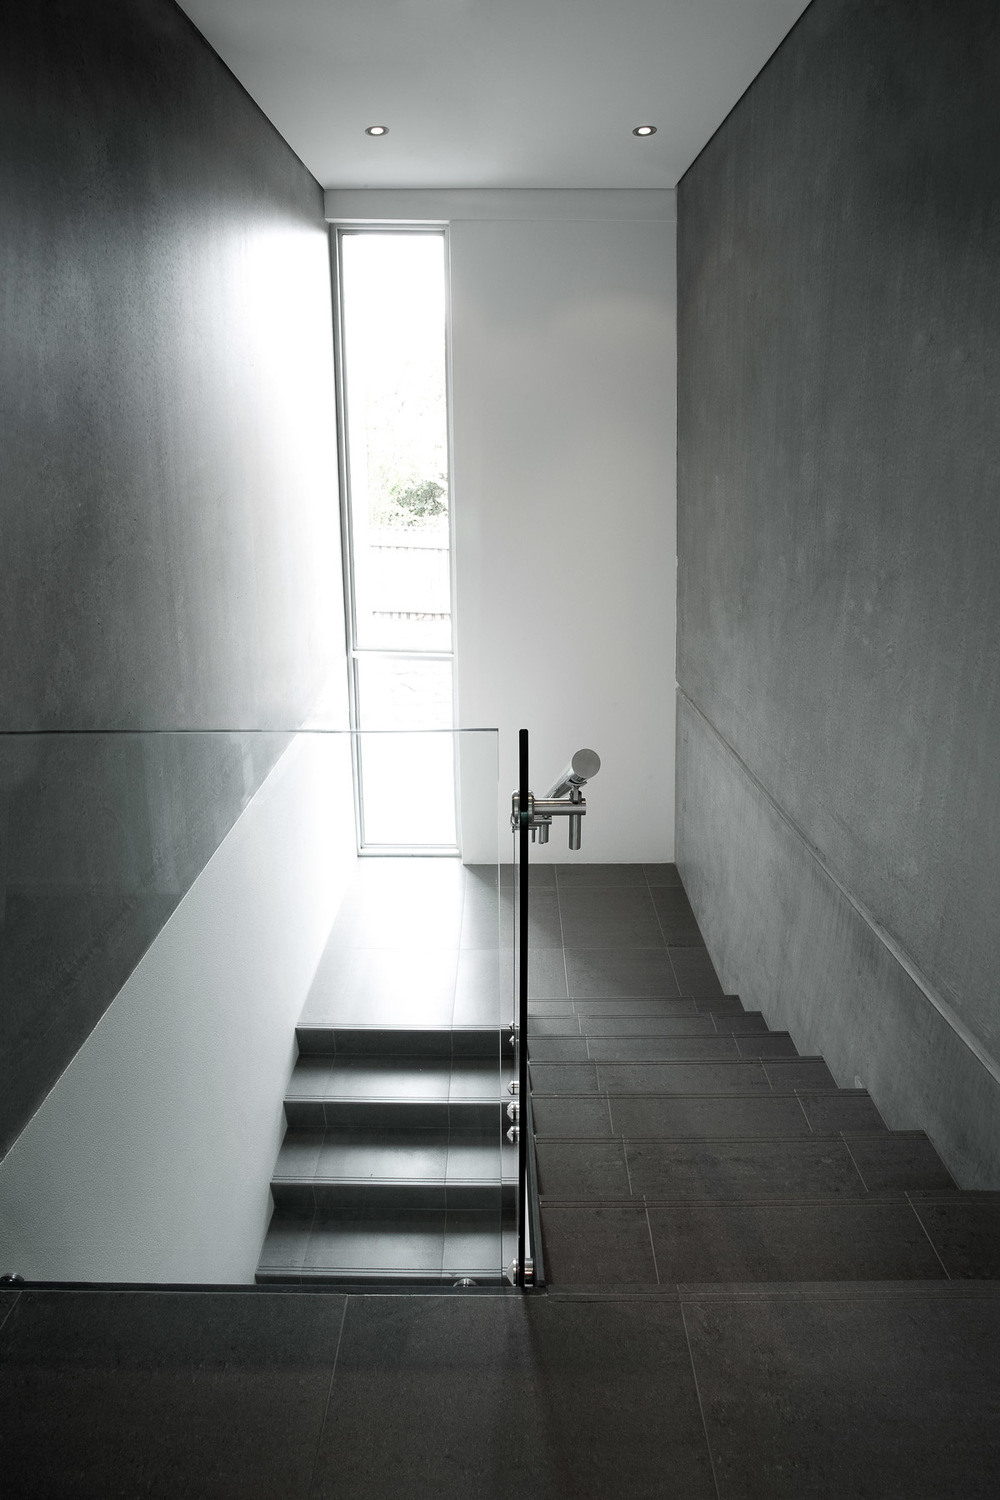 Minimalist interior stairs in black and white by Melbourne architecture photographer Stefan Postles